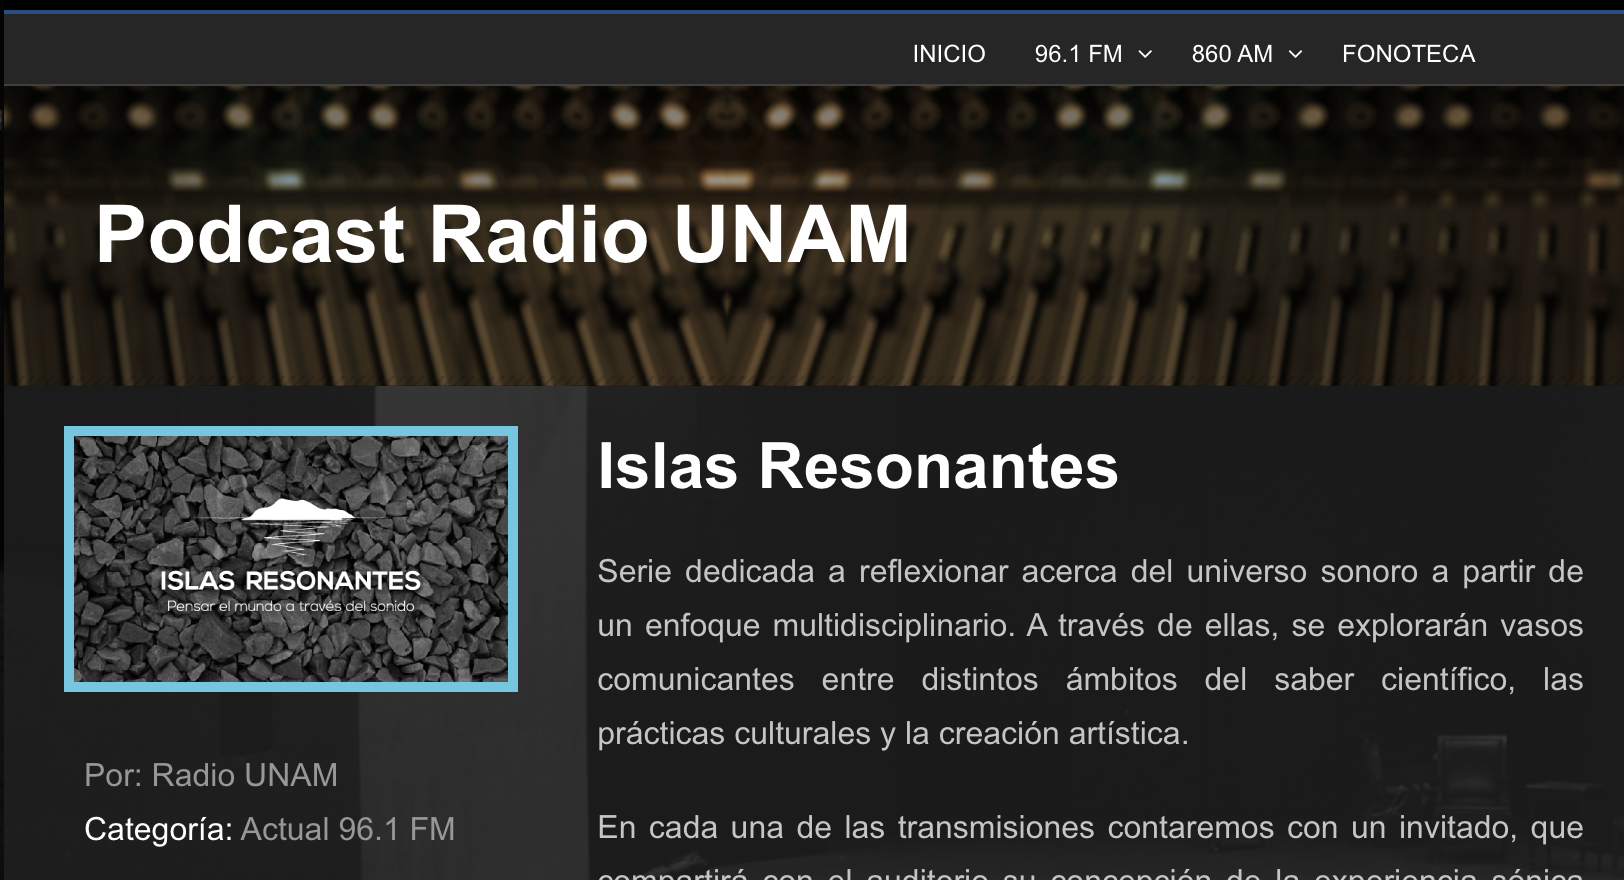 Radio UNAM: Islas Resonantes